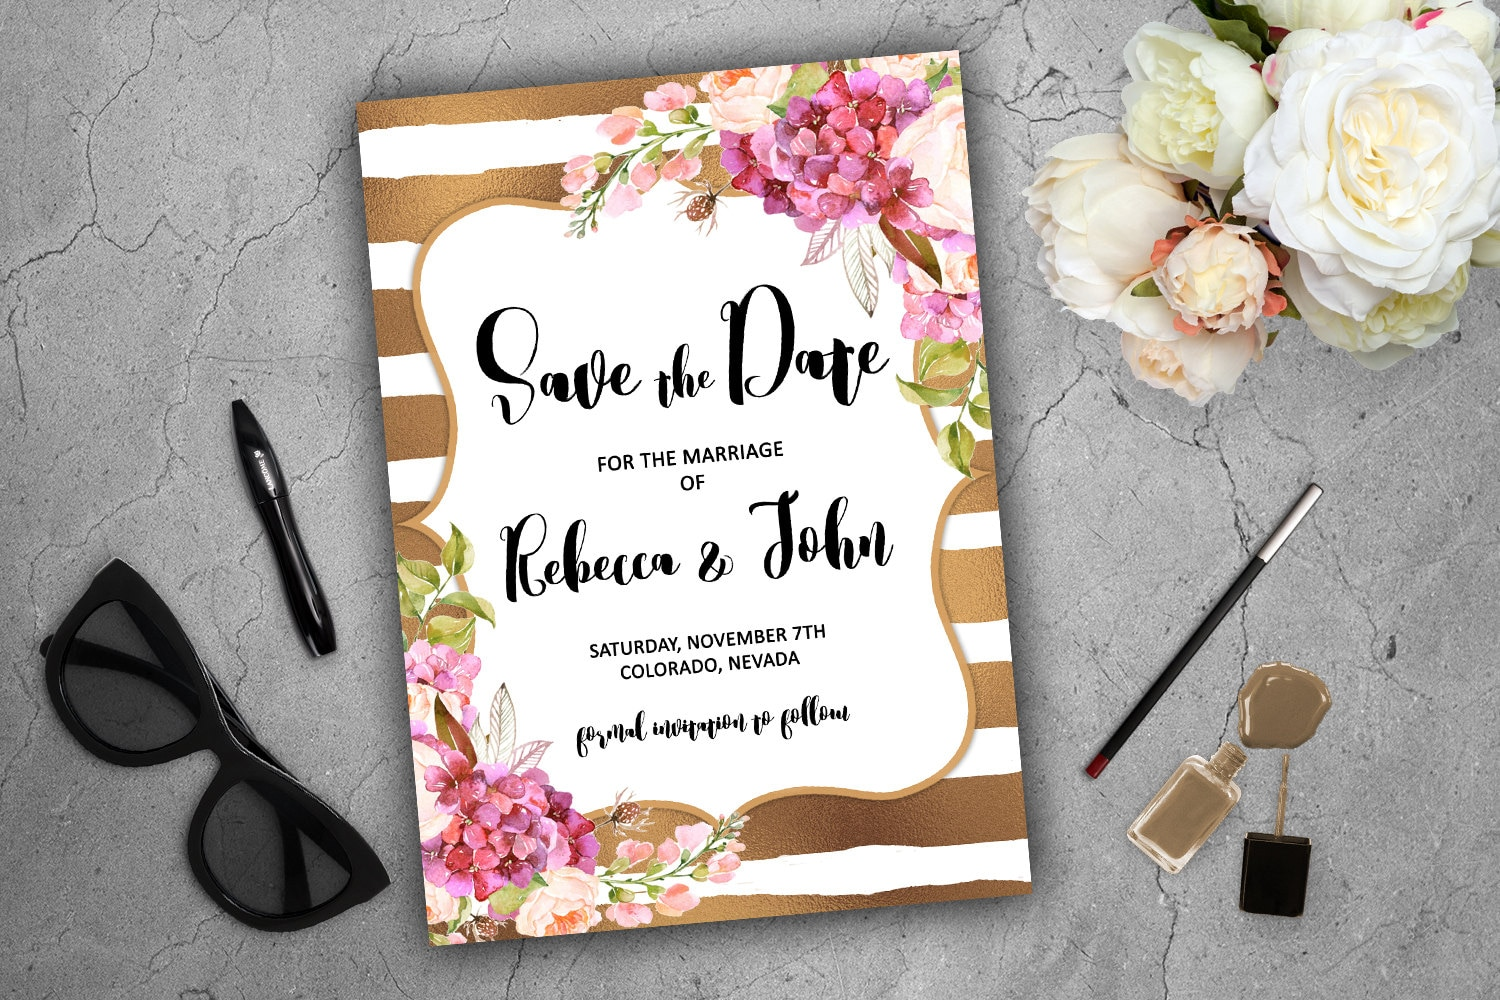 Purple hydrangea wedding invitation sample -  Hydrangea Peony Oval Framed Wedding Invitations Save The Date Gold And White Cards Stripes Spade Theme Gold Stripes Flowers Fl Glitter Pink